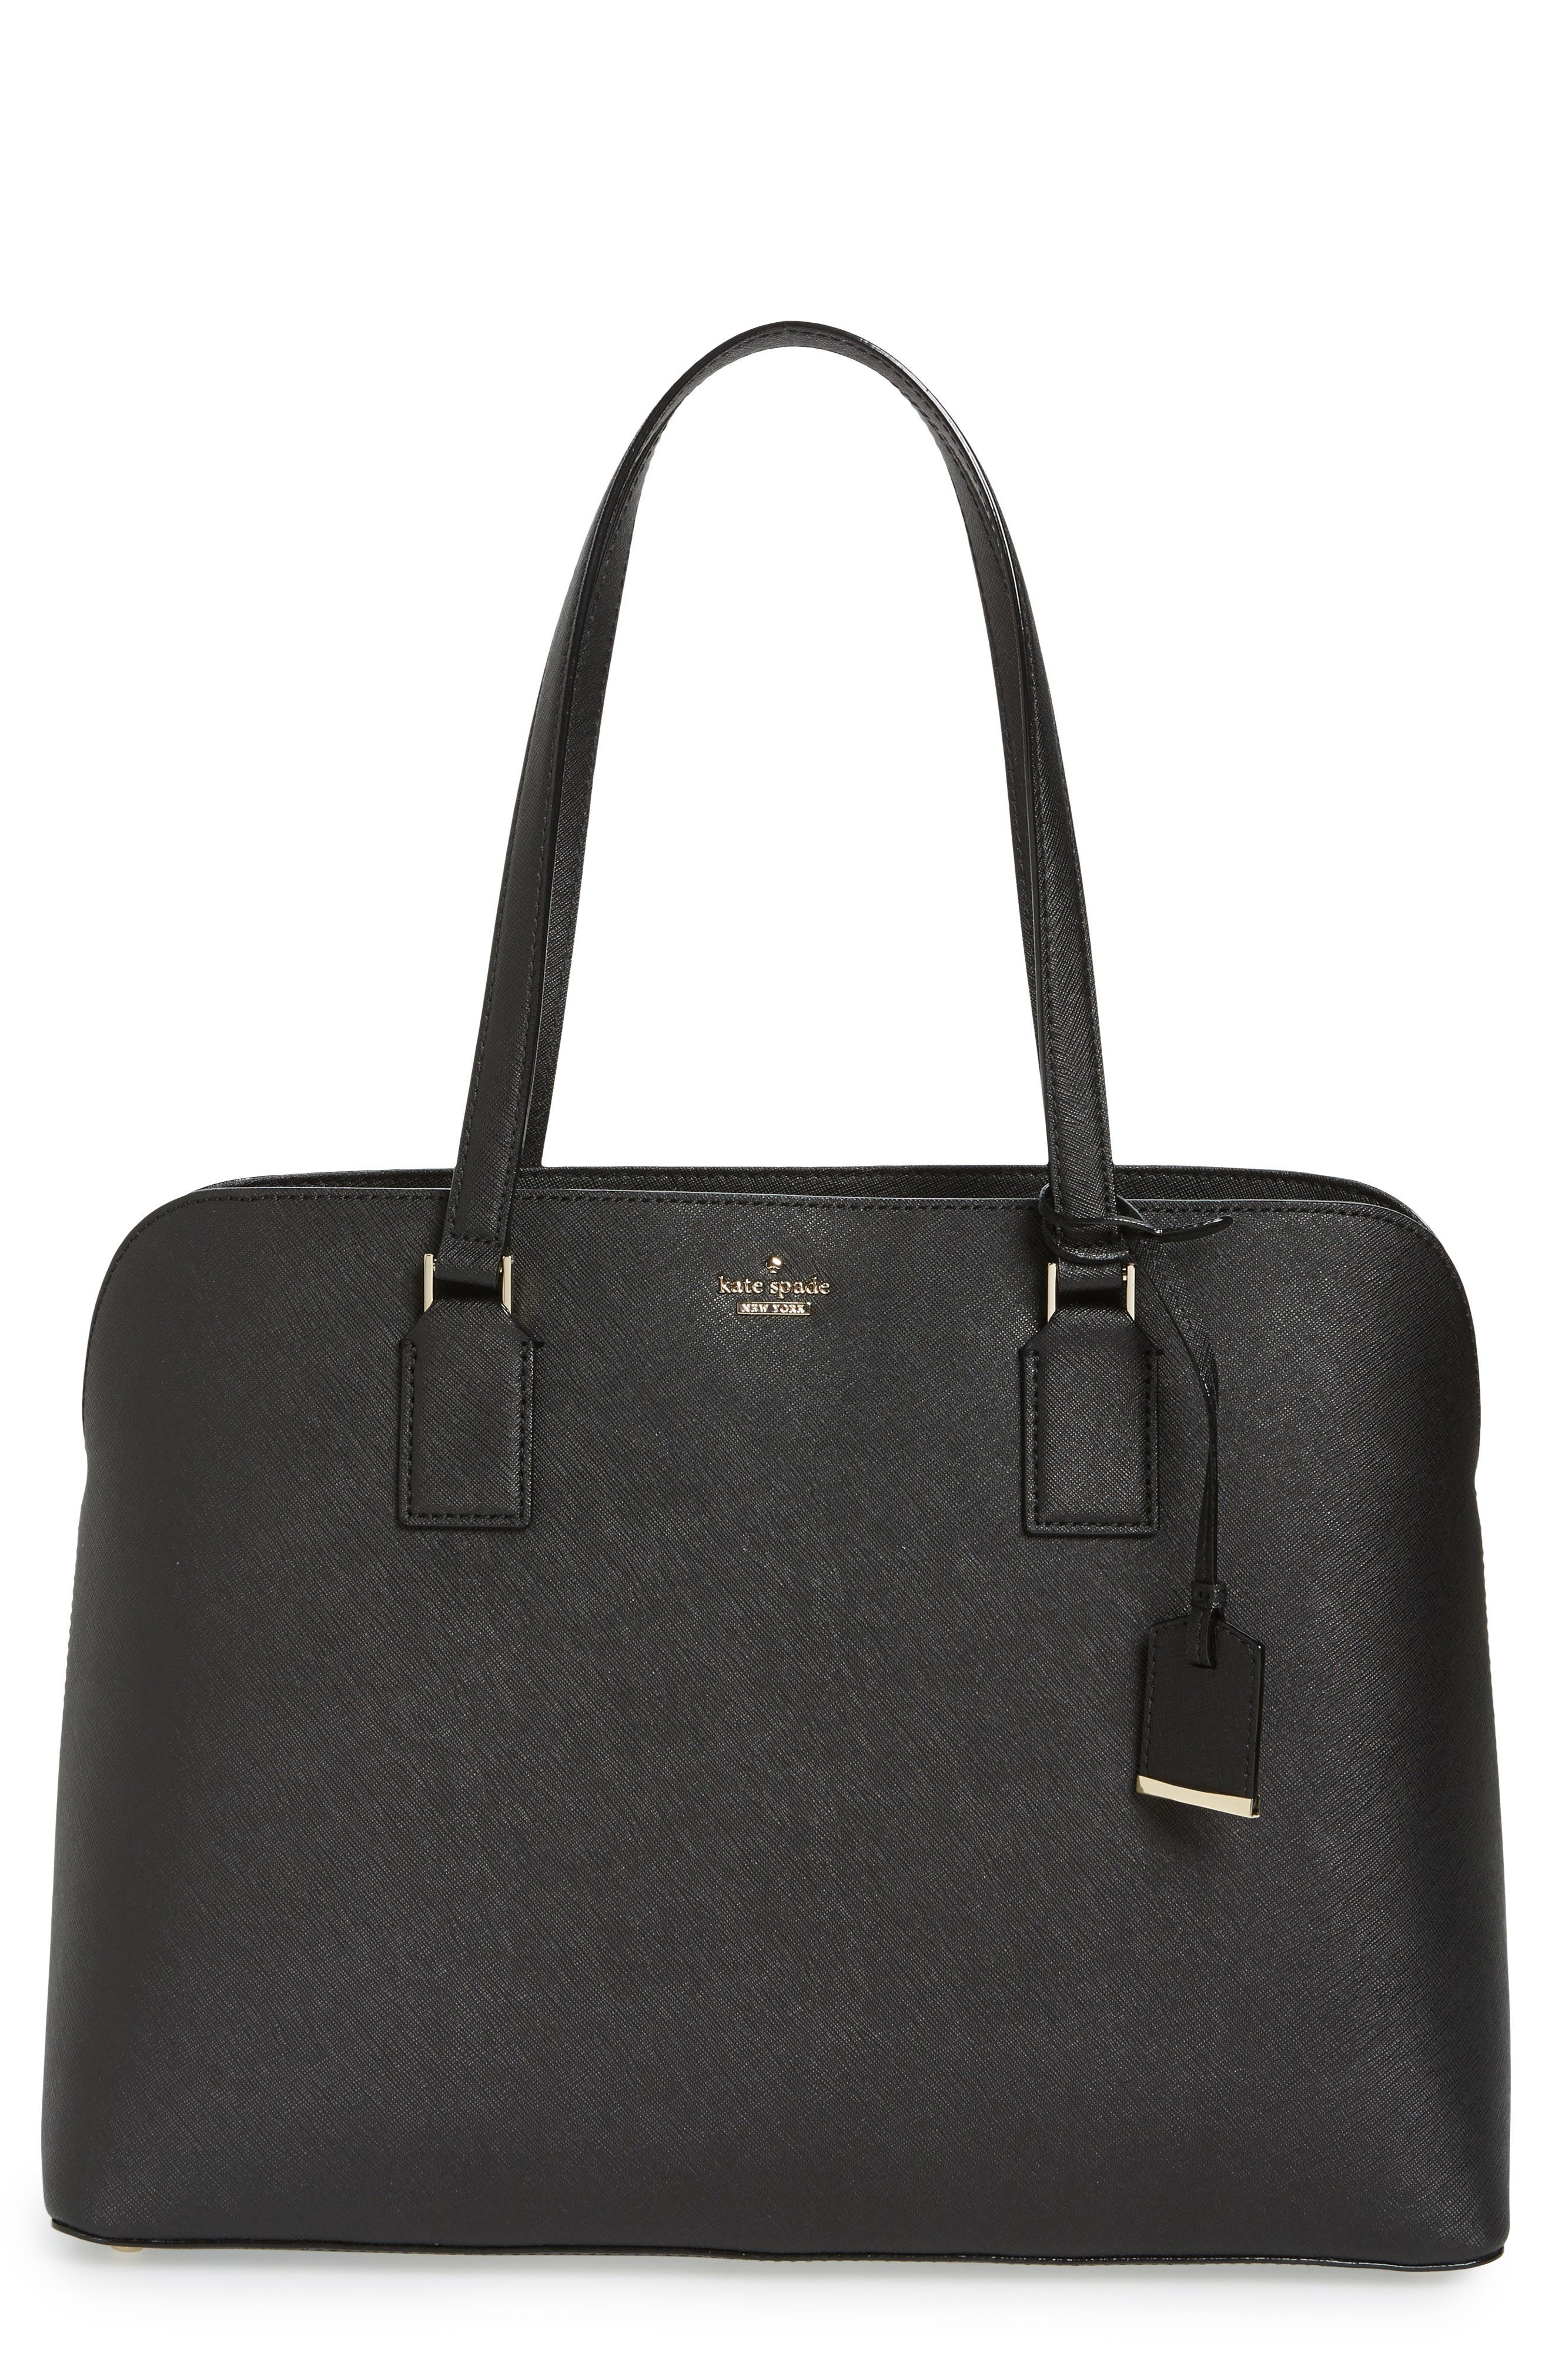 Alternate Image 1 Selected - kate spade new york cameron street - marybeth leather tote